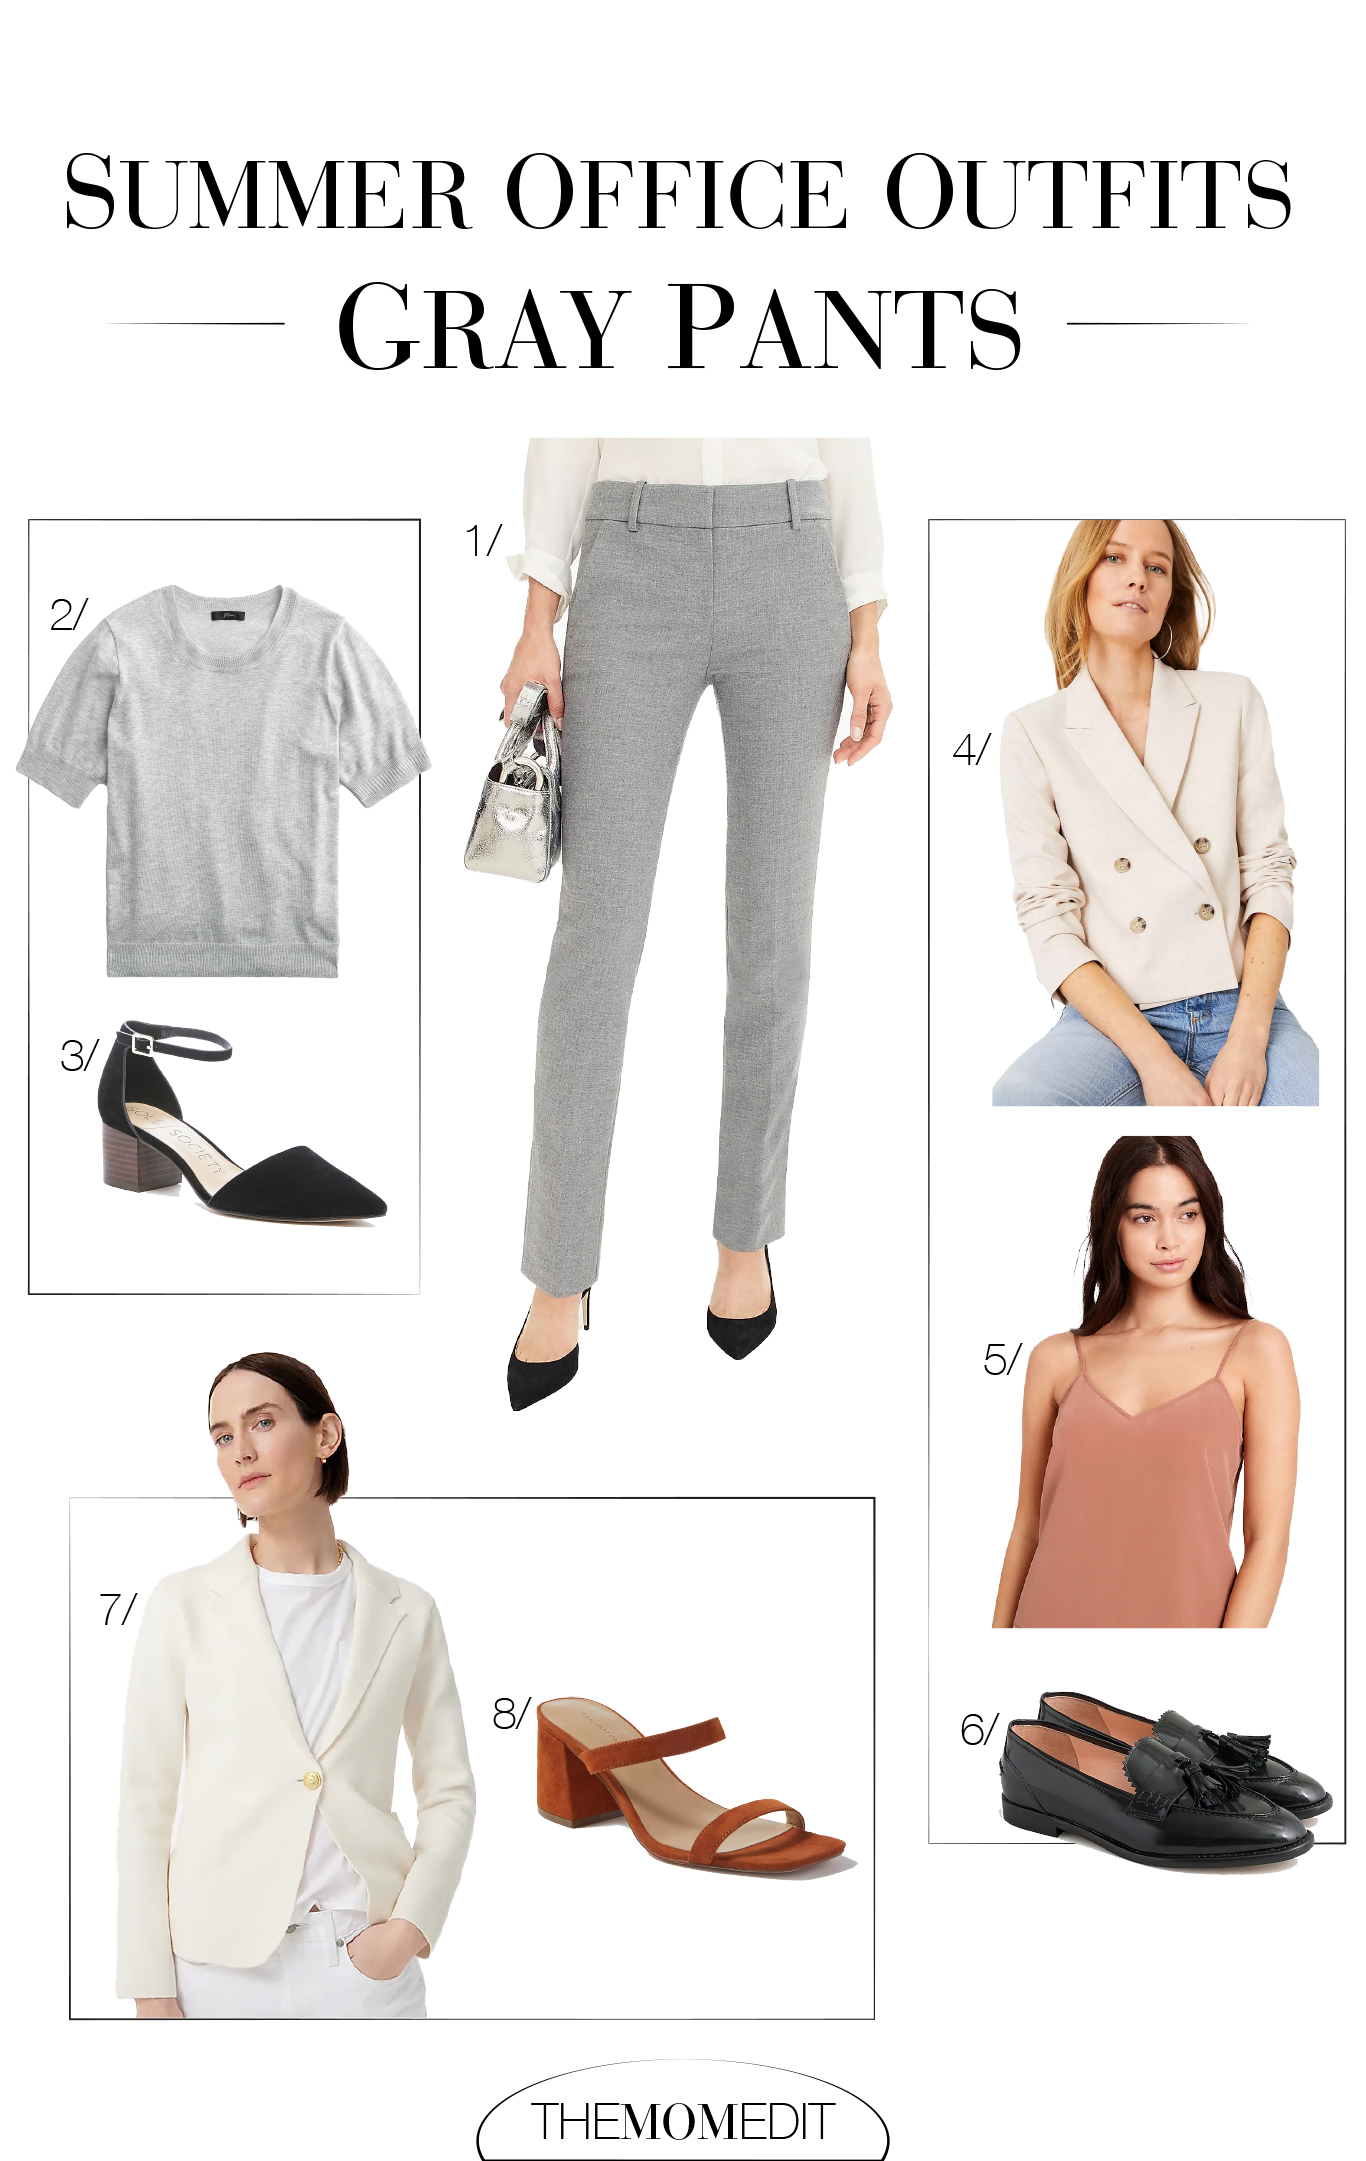 This summer, business casual outfits for the office are on order. Think layers, wide-leg pants & neutrals, but definitely no frills & ruffles. This capsule wardrobe nails it.